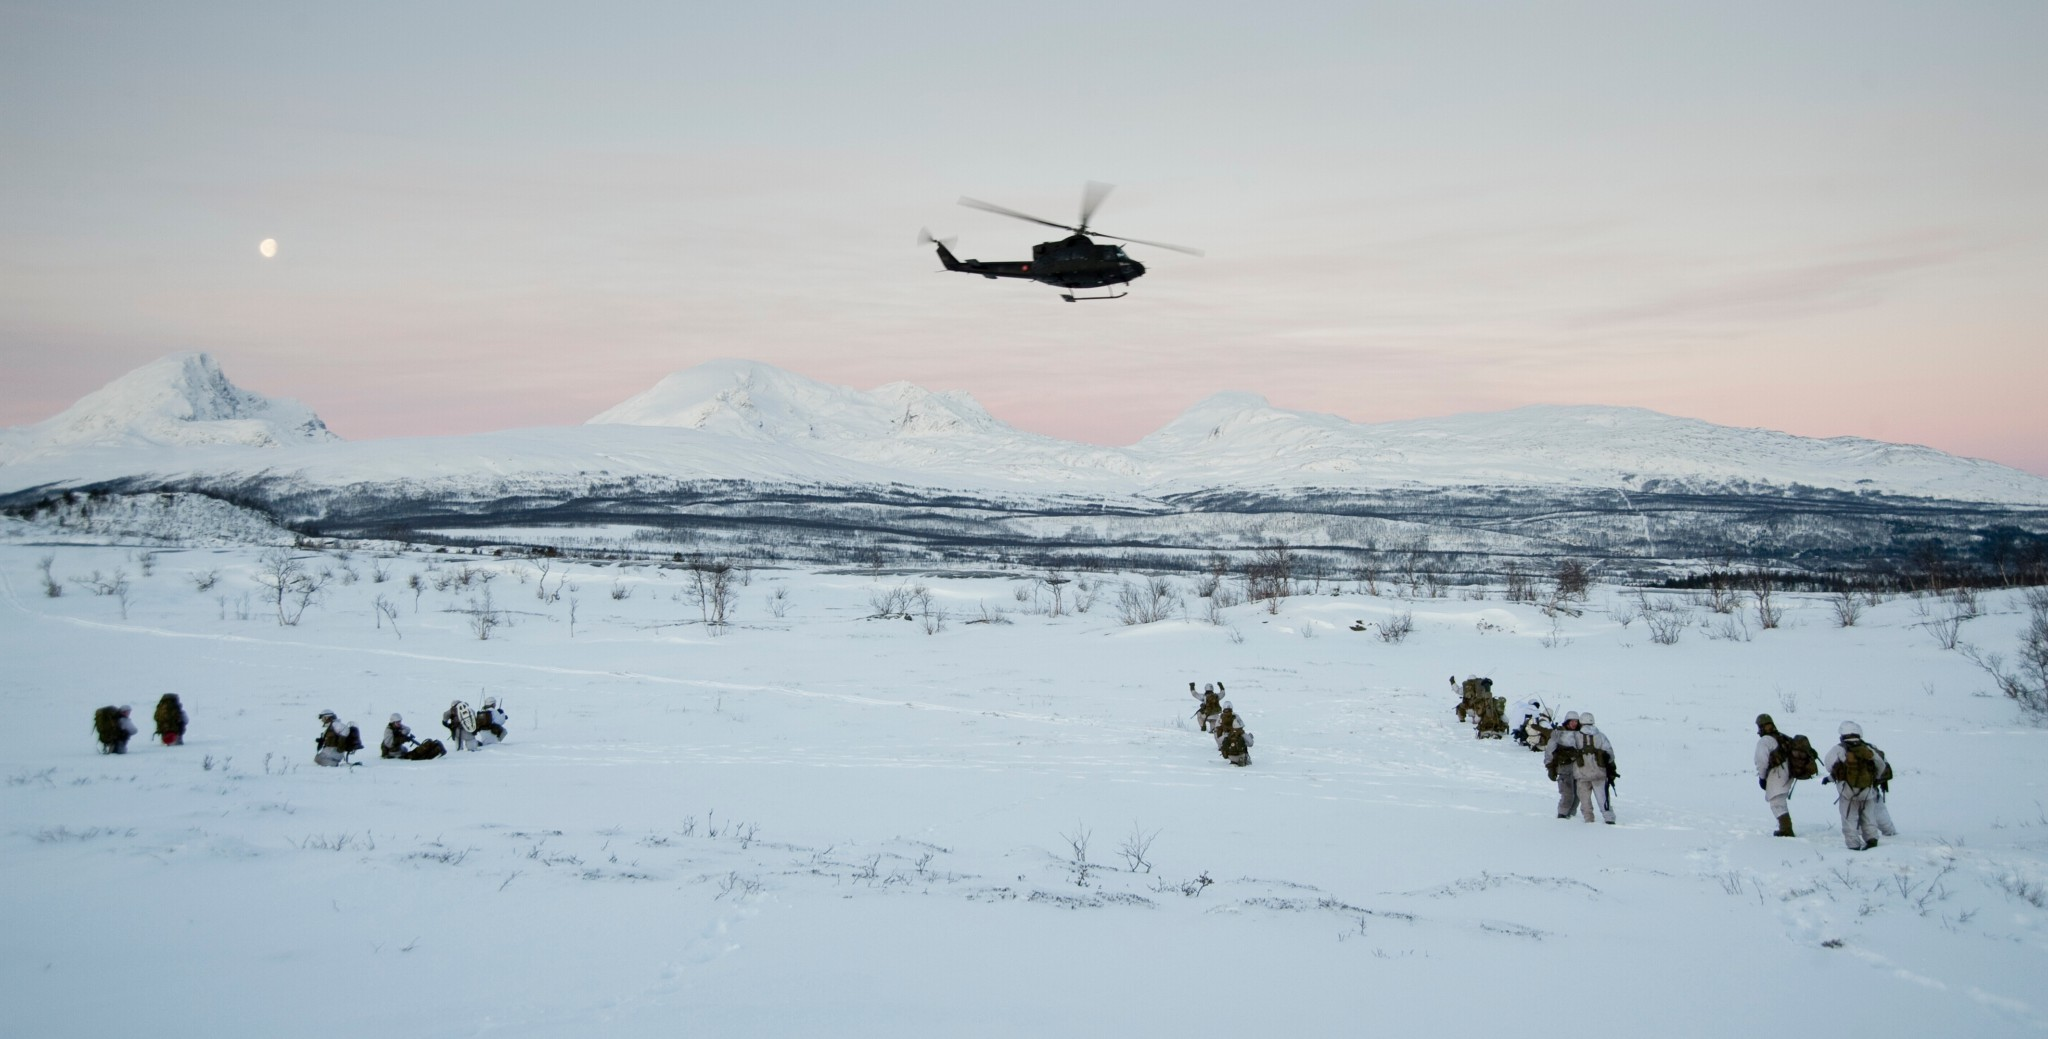 Helikopterforflyttning under øvelse Blue Fox i Balsfjord i Troms i november 2010./ Troops from the 2.battalion are being transported by helicopters during the Blue Fox exercise. Foto: MALIN WAALER/FORSVARET